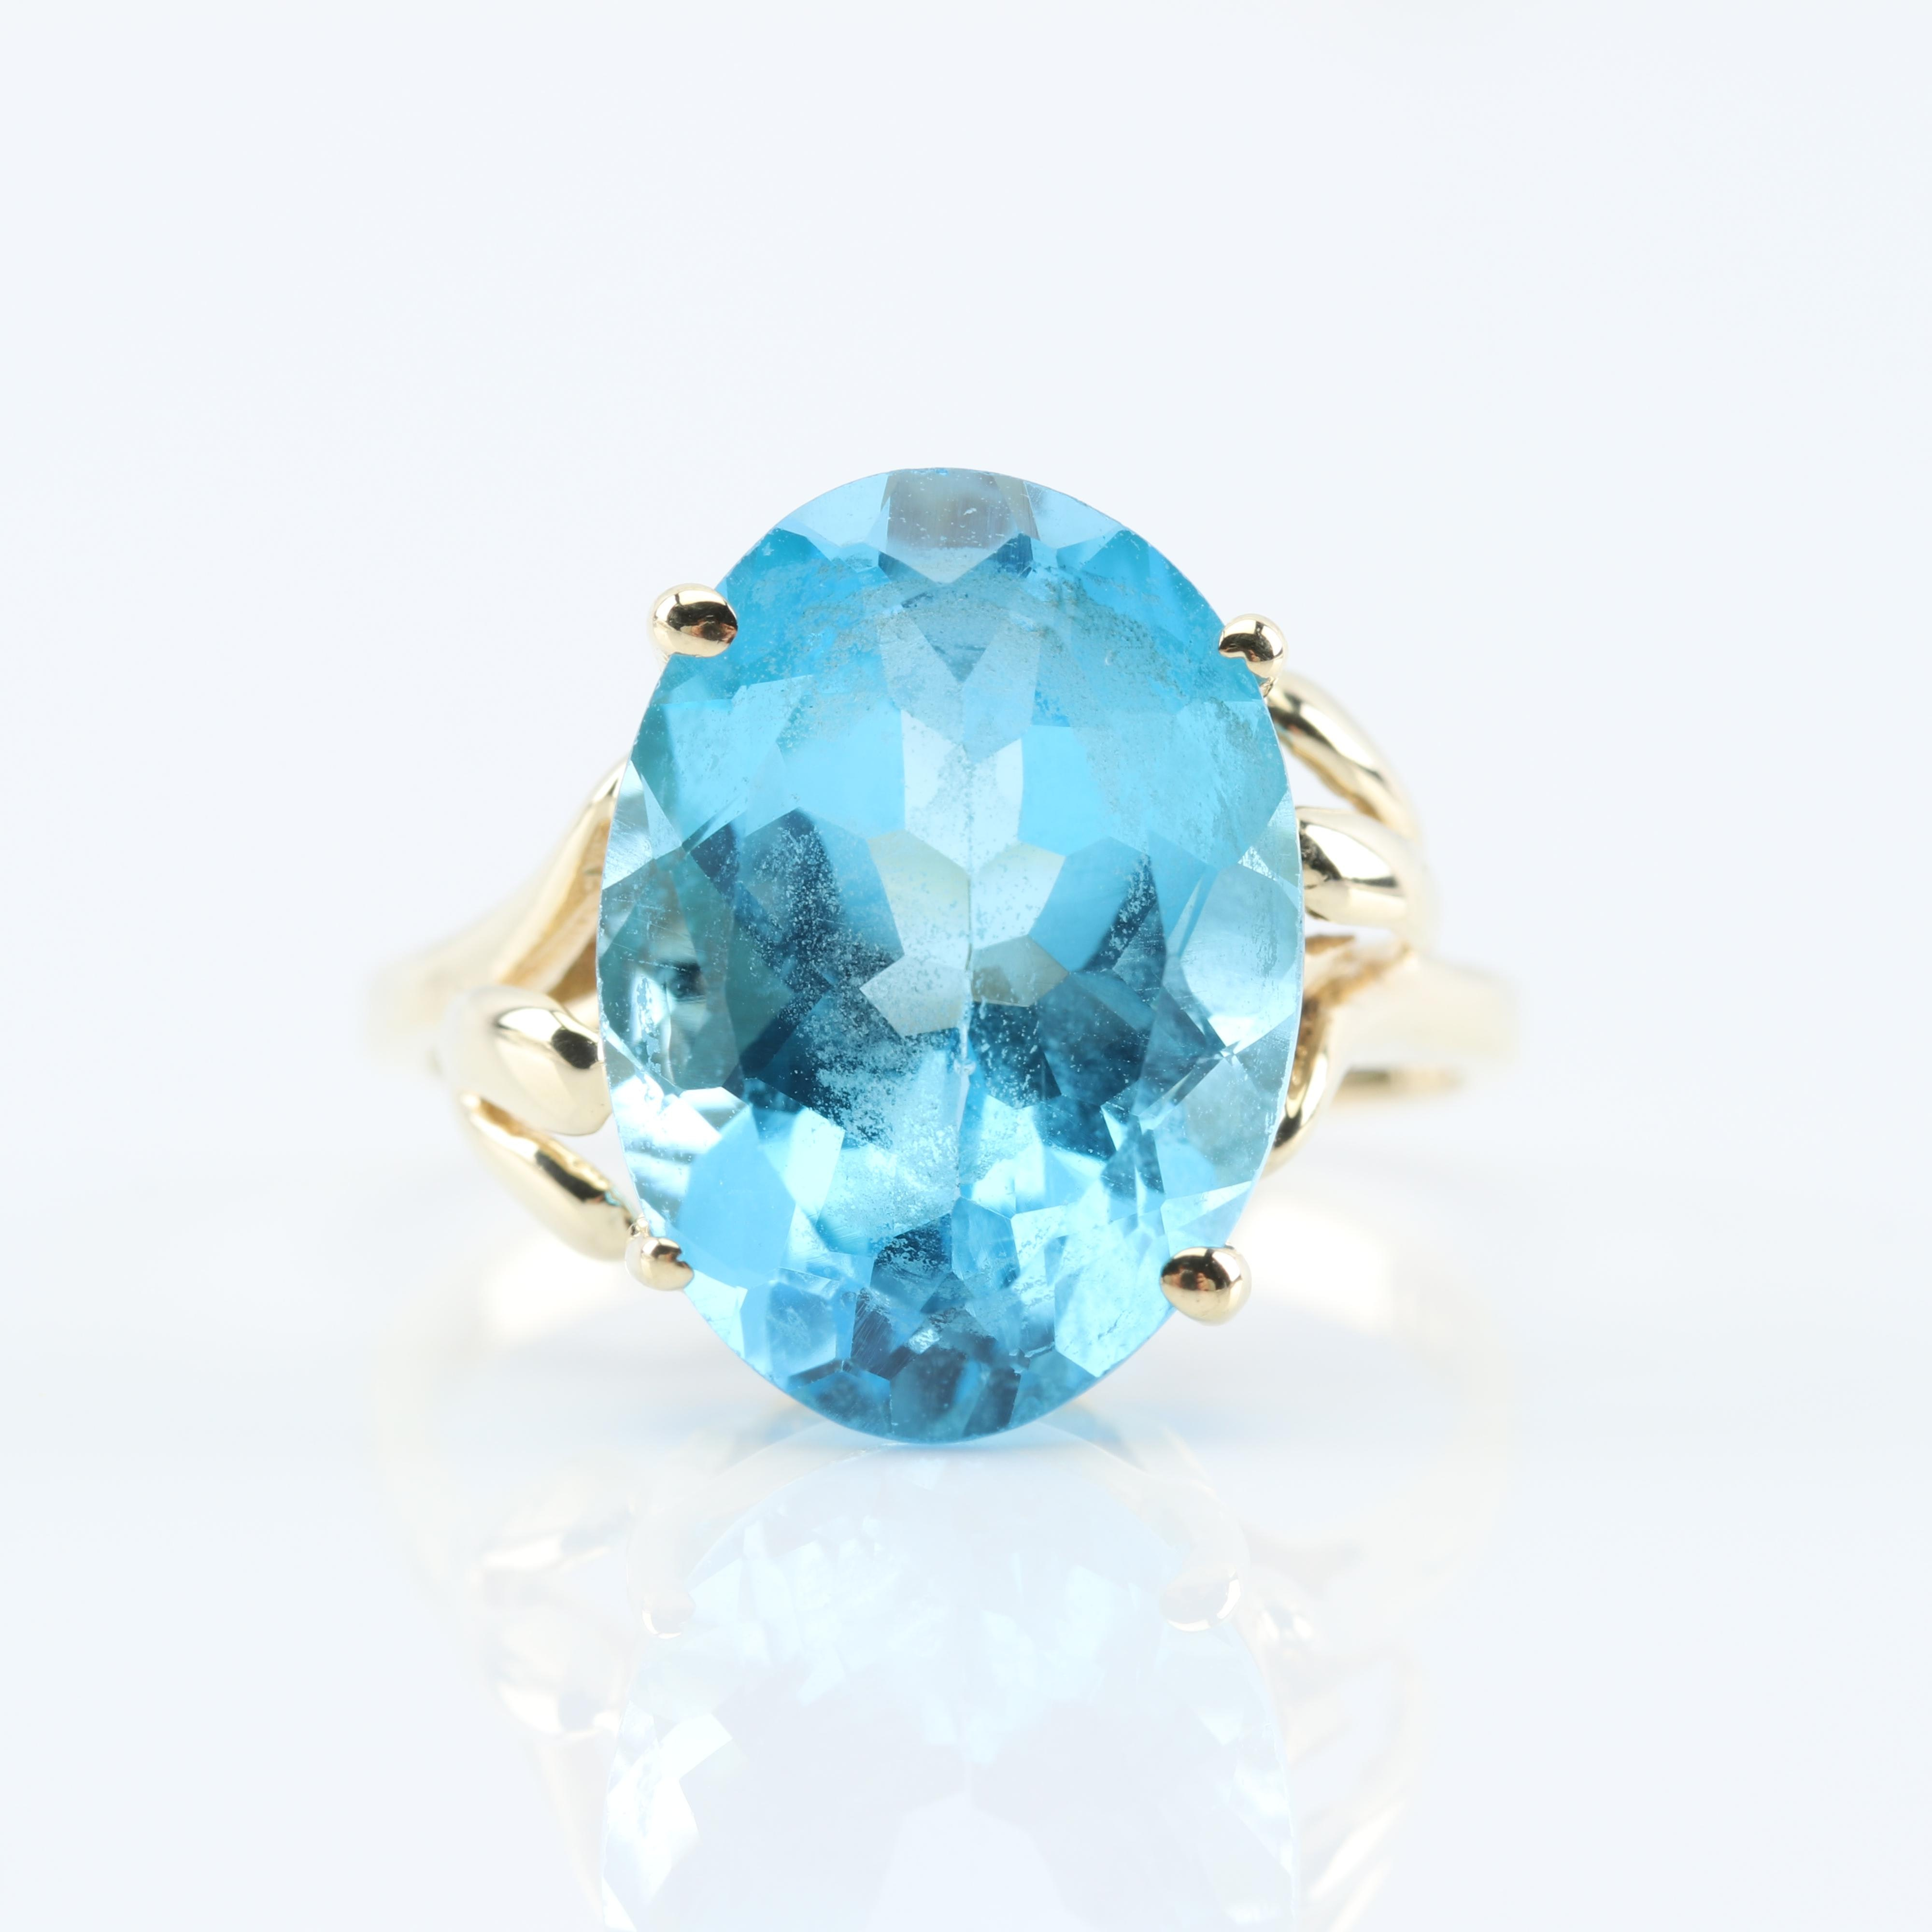 10K Yellow Gold and 7.00 CT Blue Topaz Ring